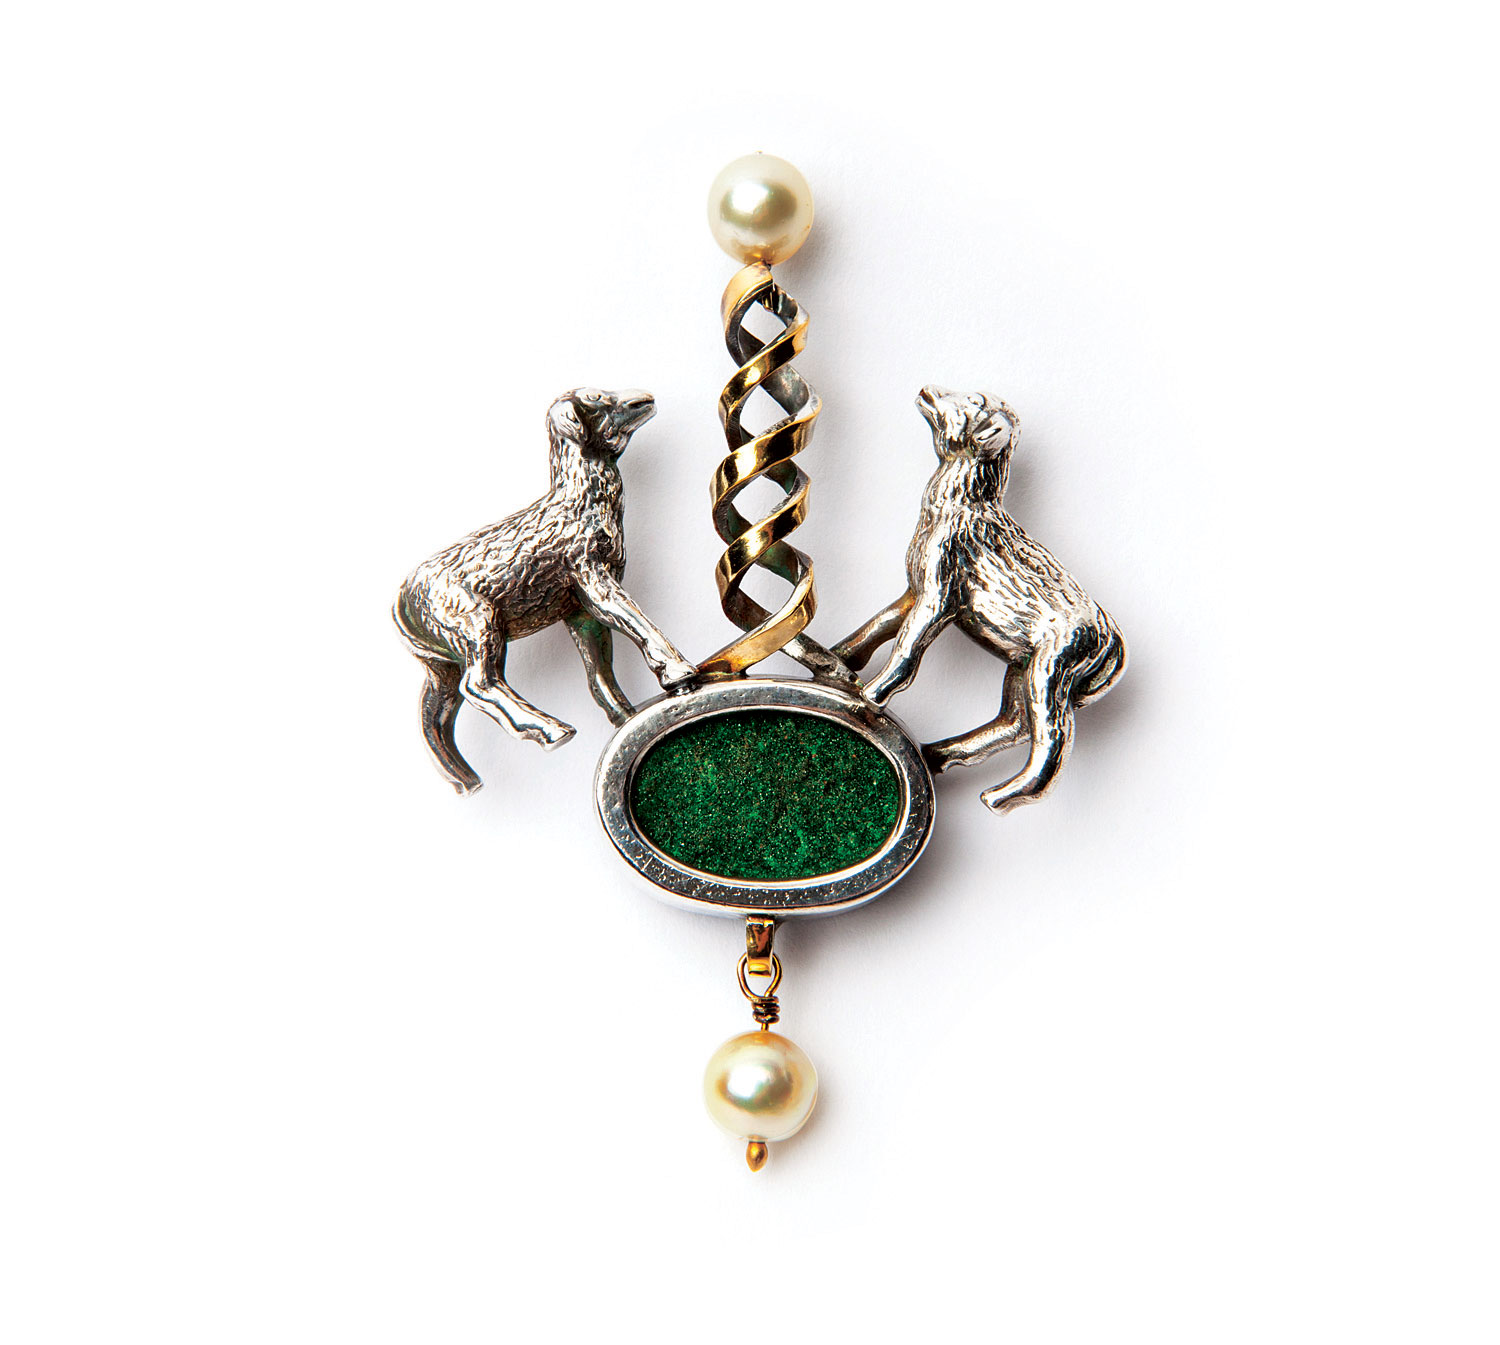 THE CLONING OF DOLLY BROOCH of sterling silver, fine silver, fourteen and eighteen karat gold, druzy uvarovite garnet, pearls, 6.4 x 5.1 x 1.3 centimeters, 1998.  Photograph by Dede Giddens.